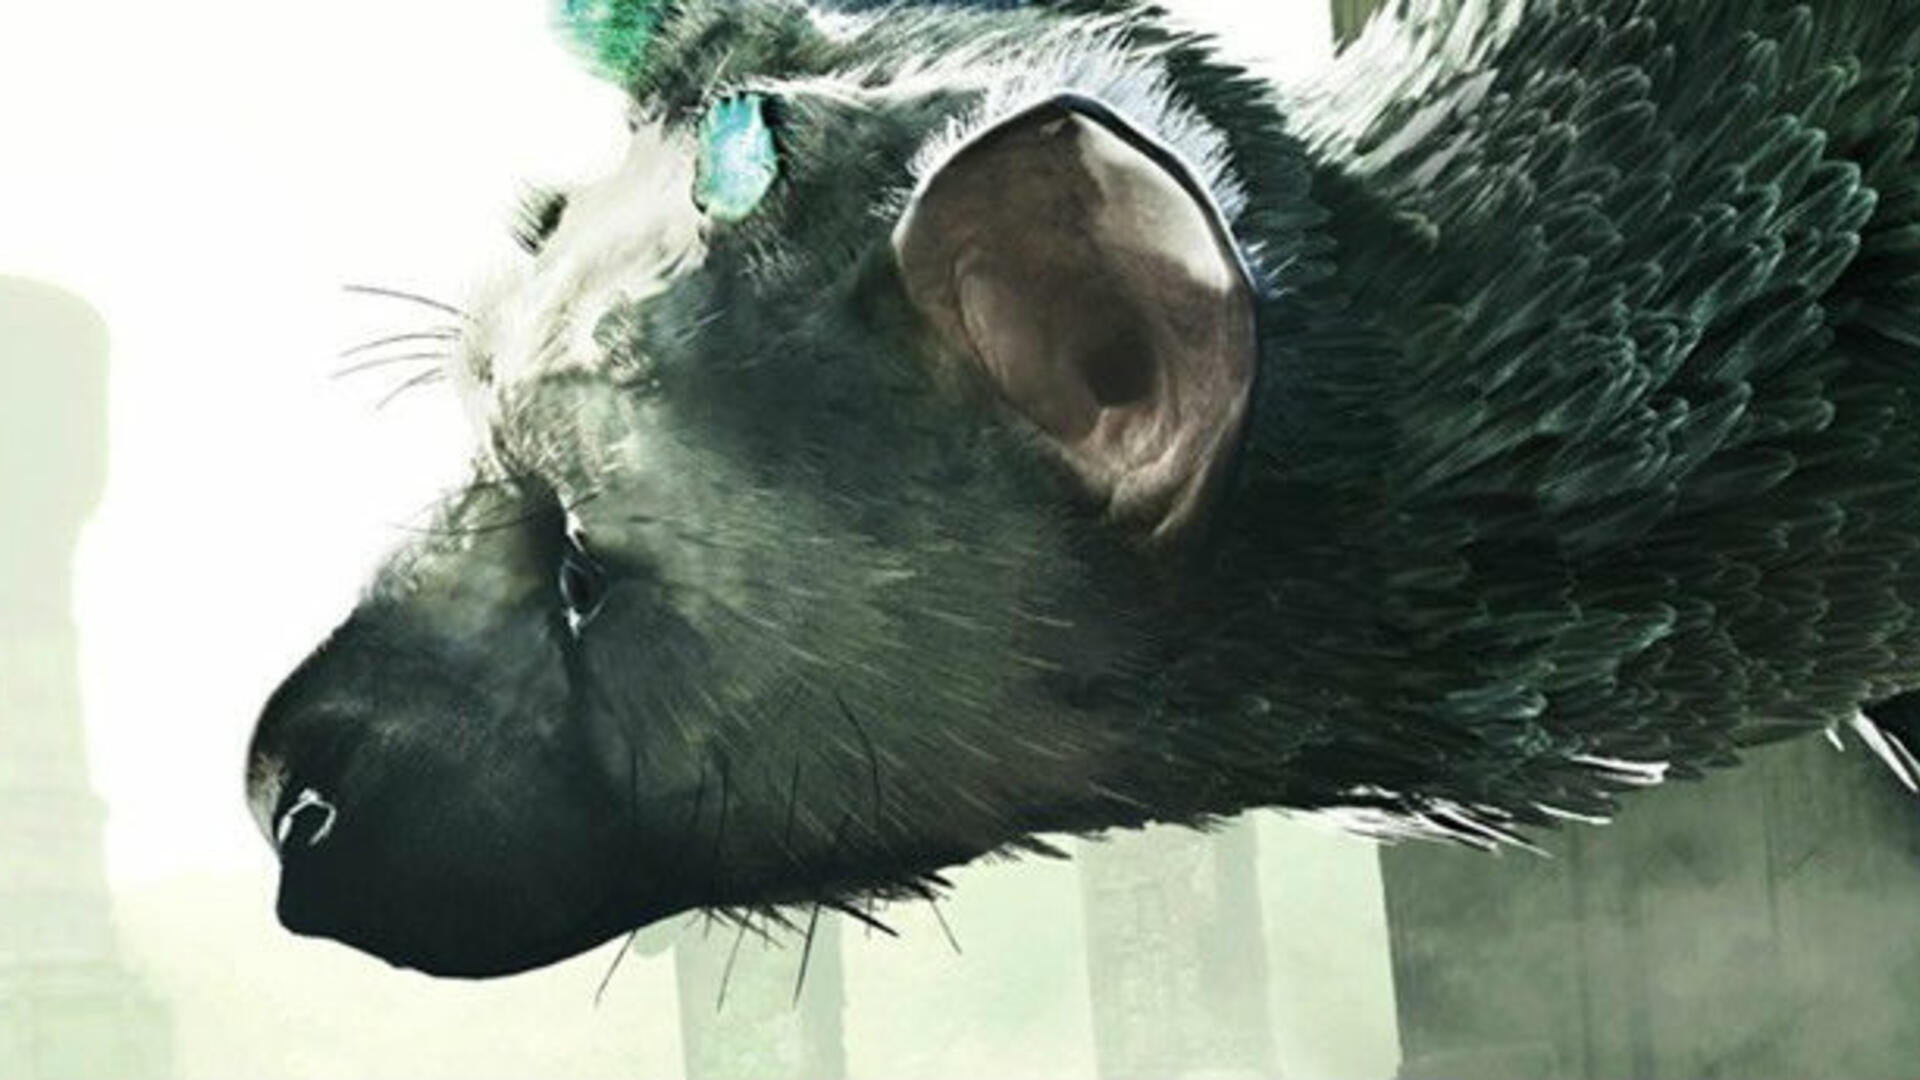 Black Friday Sale Lists The Last Guardian for $15 at Target